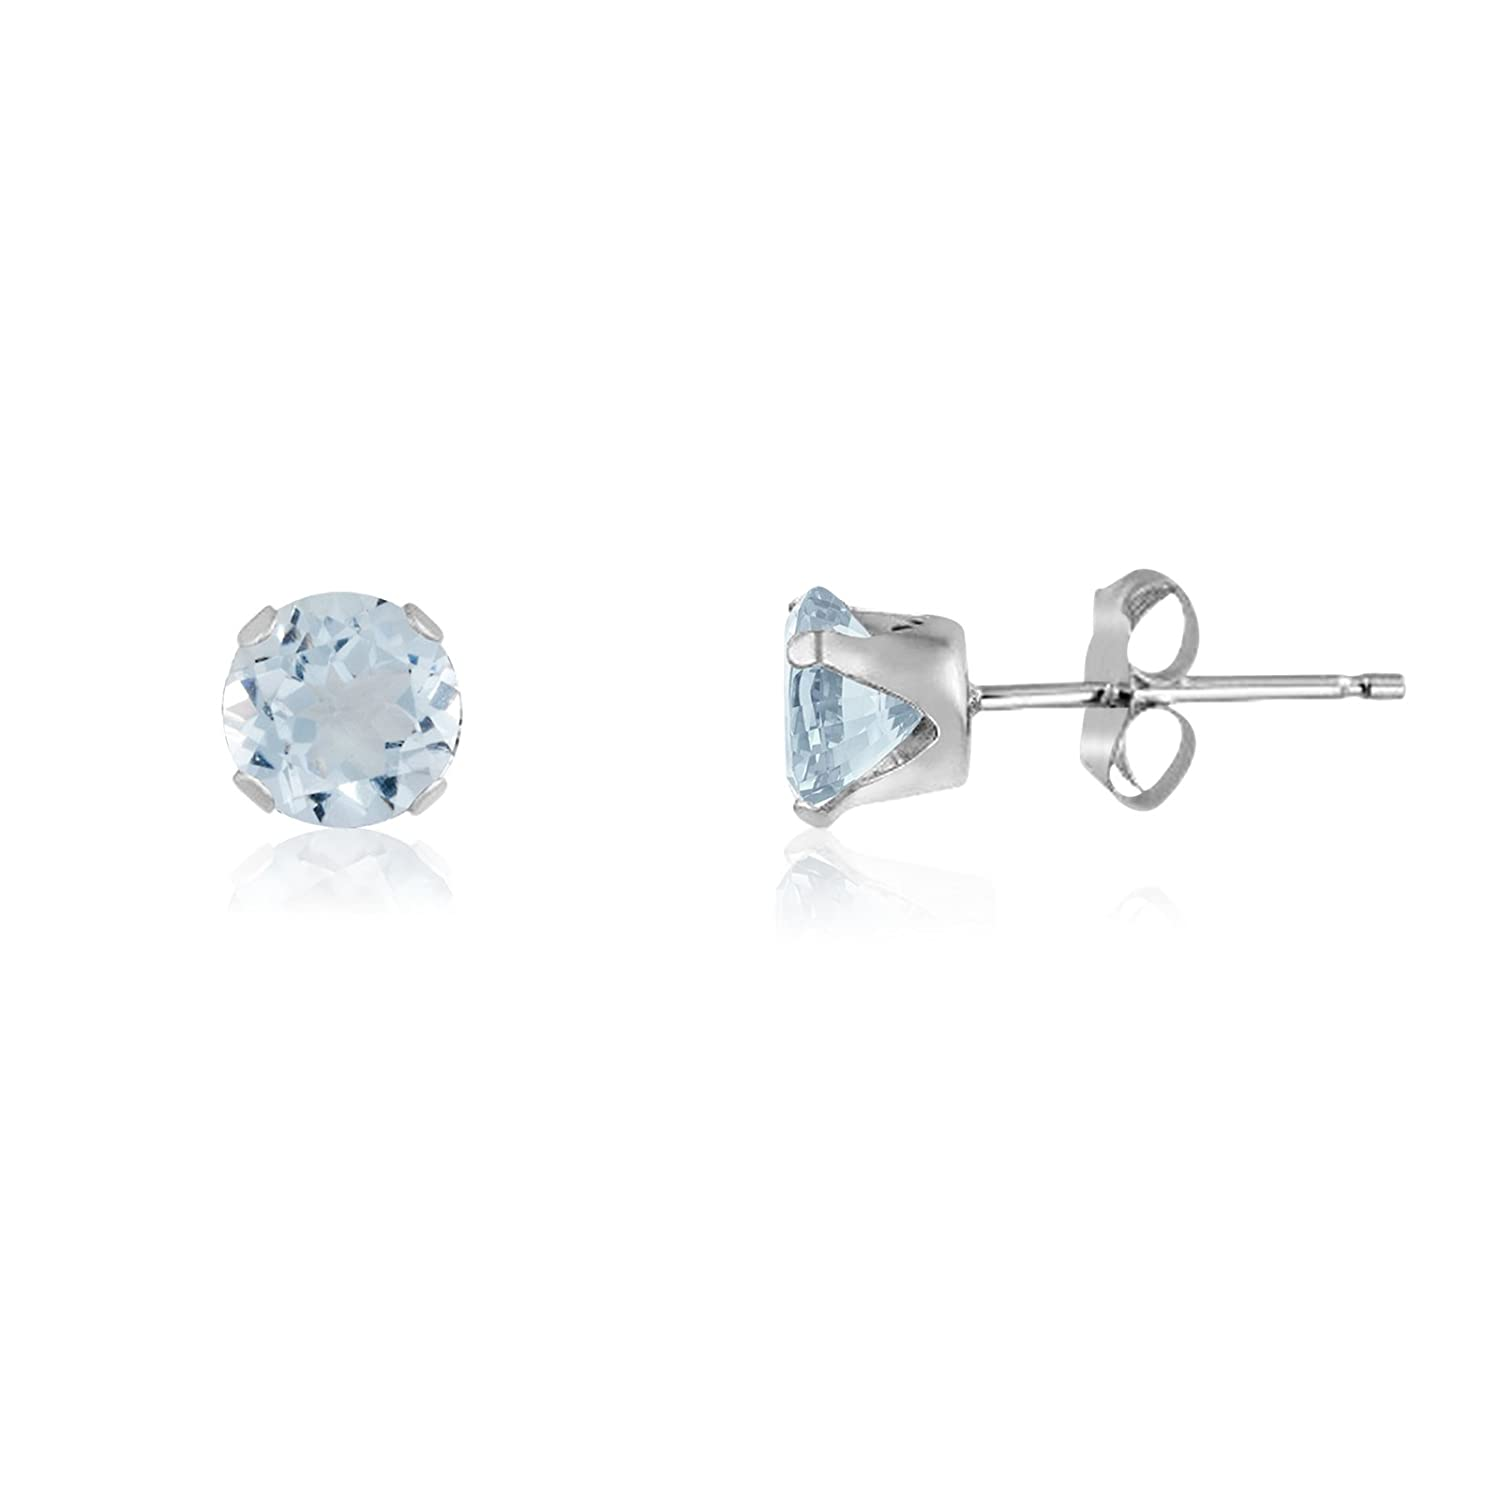 14k Yellow or Rose Goldplate Round 3mm Simulated Aquamarine Stud Earrings Sterling Silver 0.2 cttw